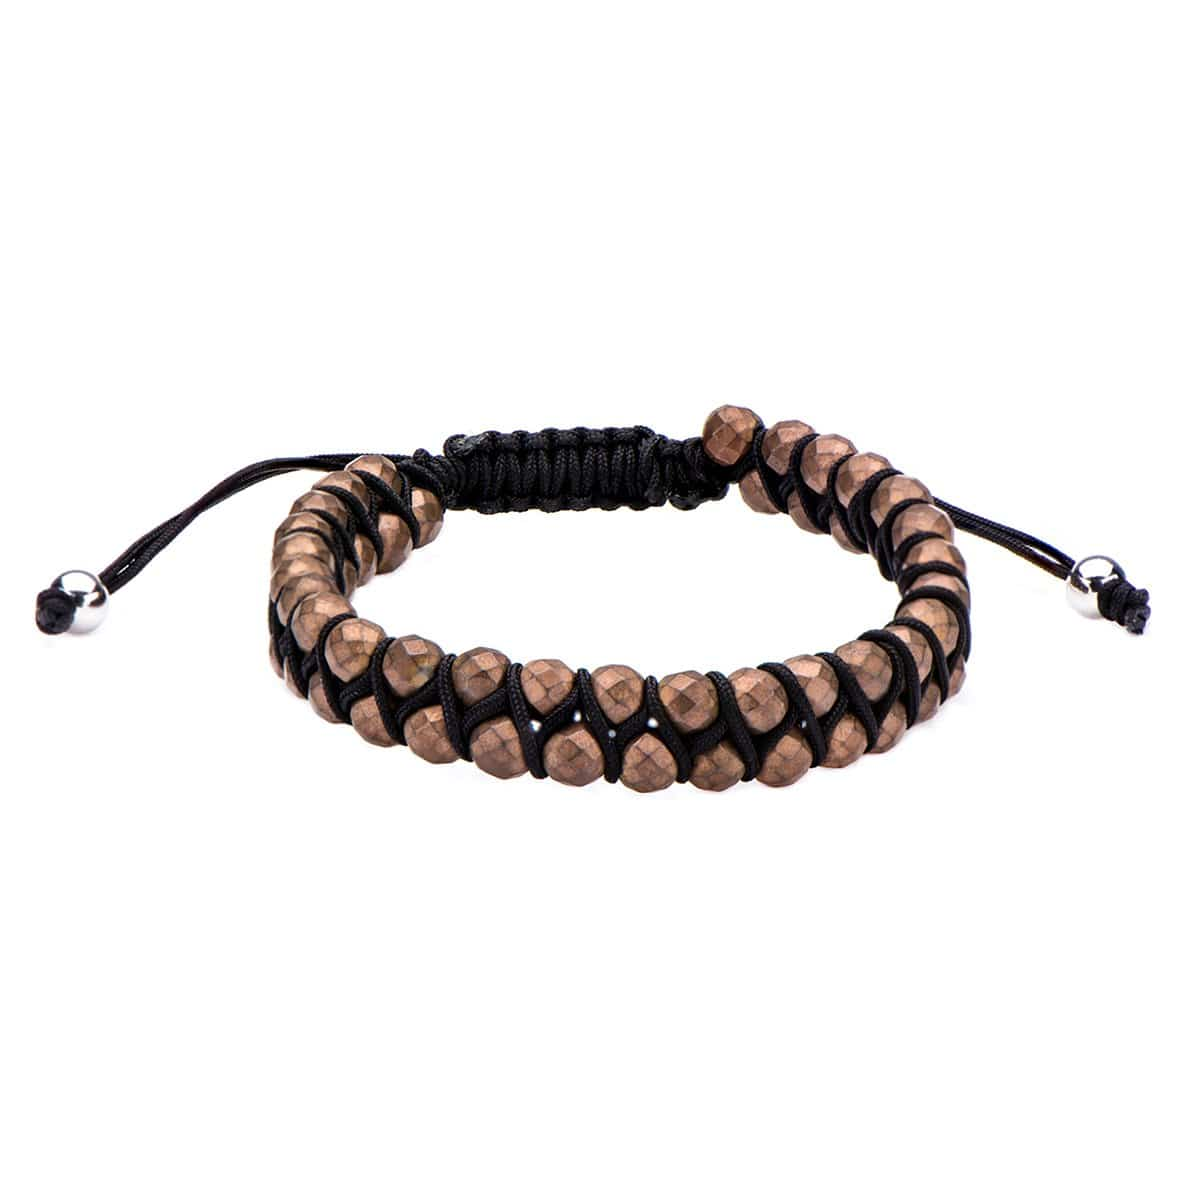 Brown Hematite Bead Adjustable Bracelet